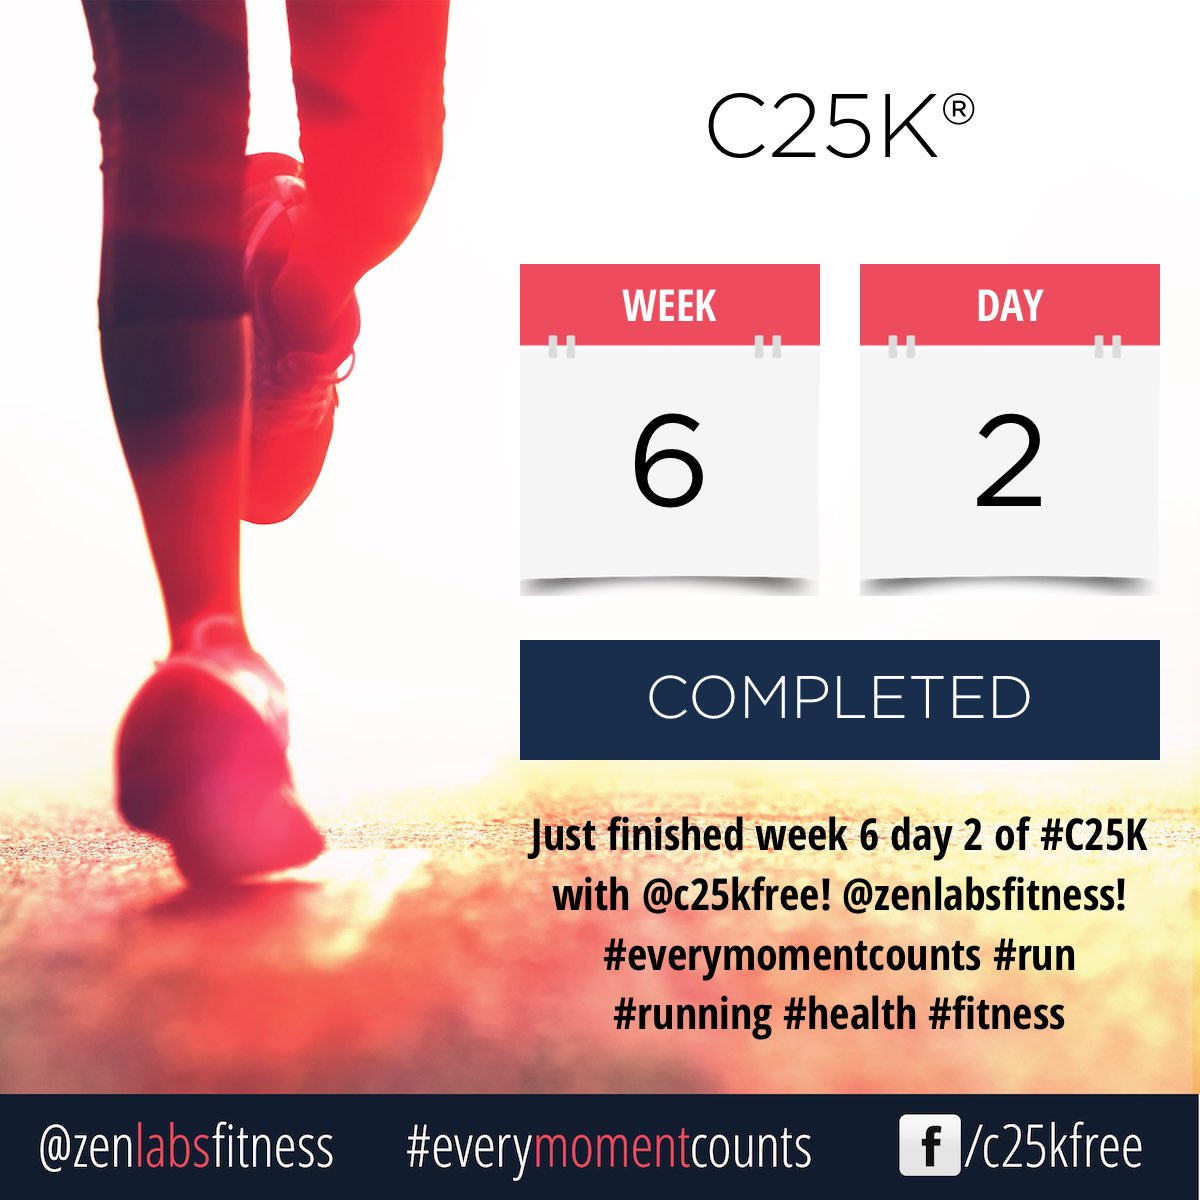 Just finished week 6 day 2 of #C25K with @c25kfree! @zenlabsfitness! #everymomentcounts #run #running #health #fitness https://t.co/FDBbkeXuwv